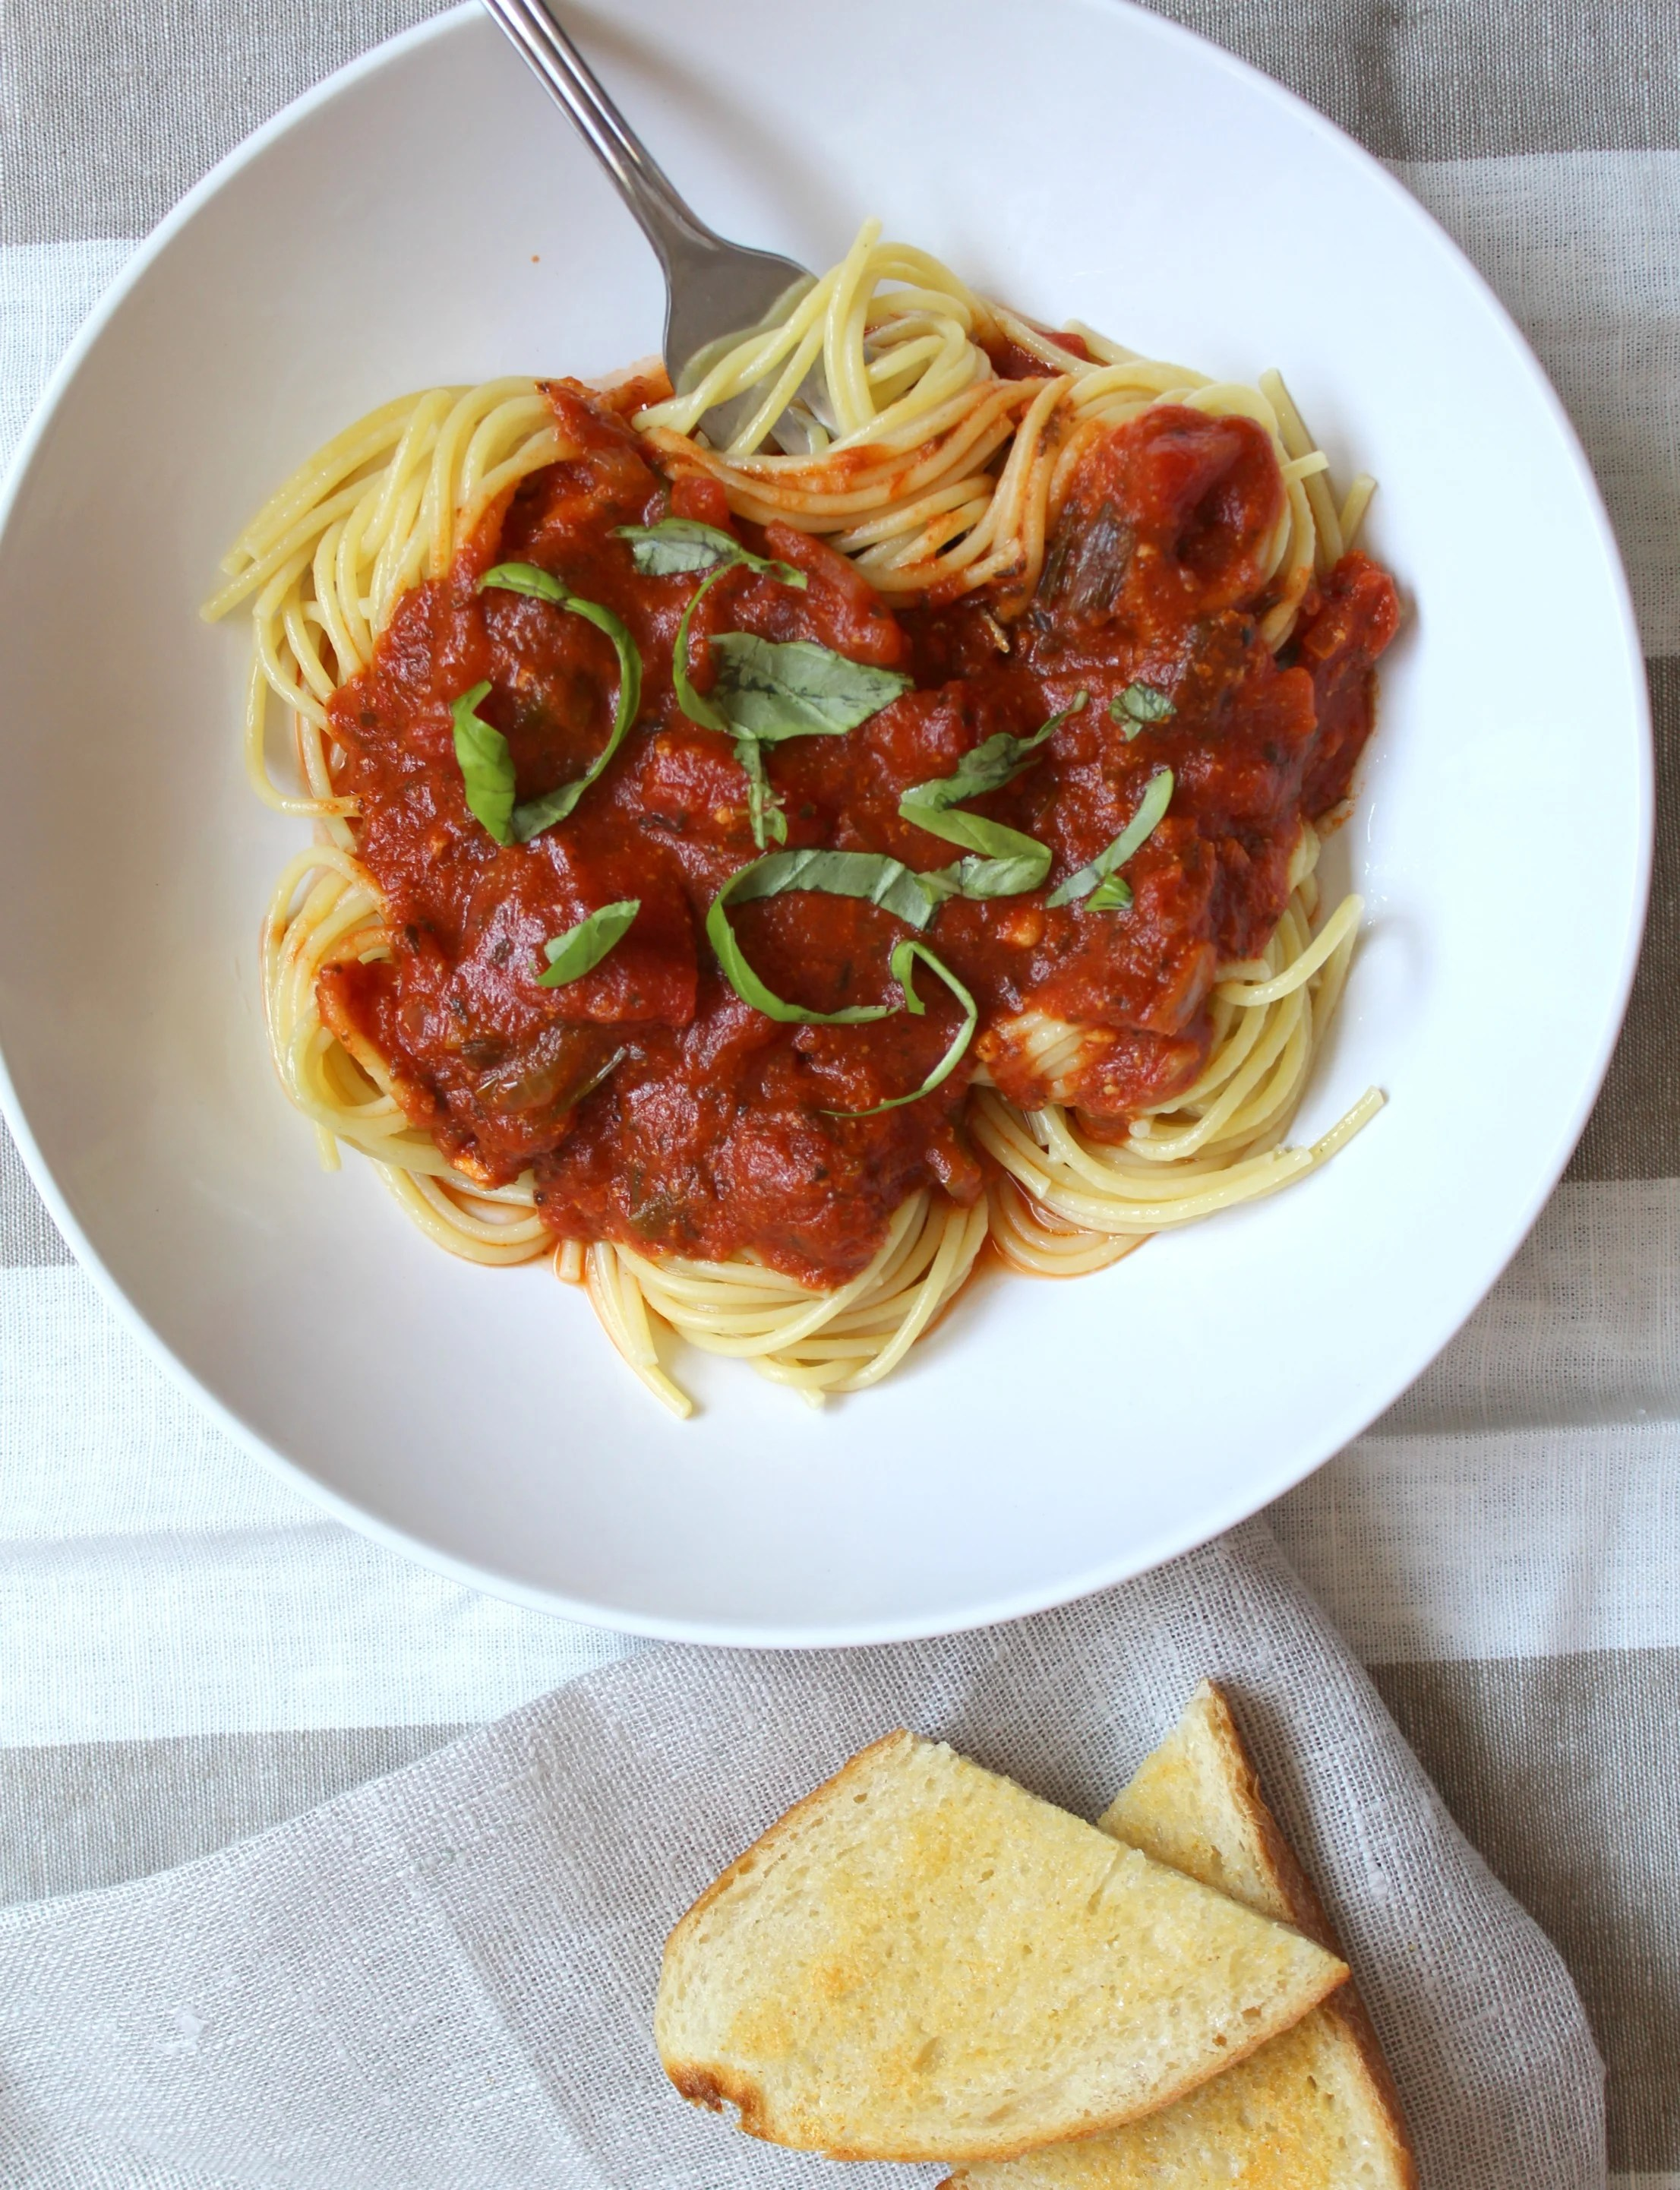 This Spicy Marinara Sauce is full of fresh veggies and has tons of flavor | VEGAN + GF | ThisSavoryVegan.com